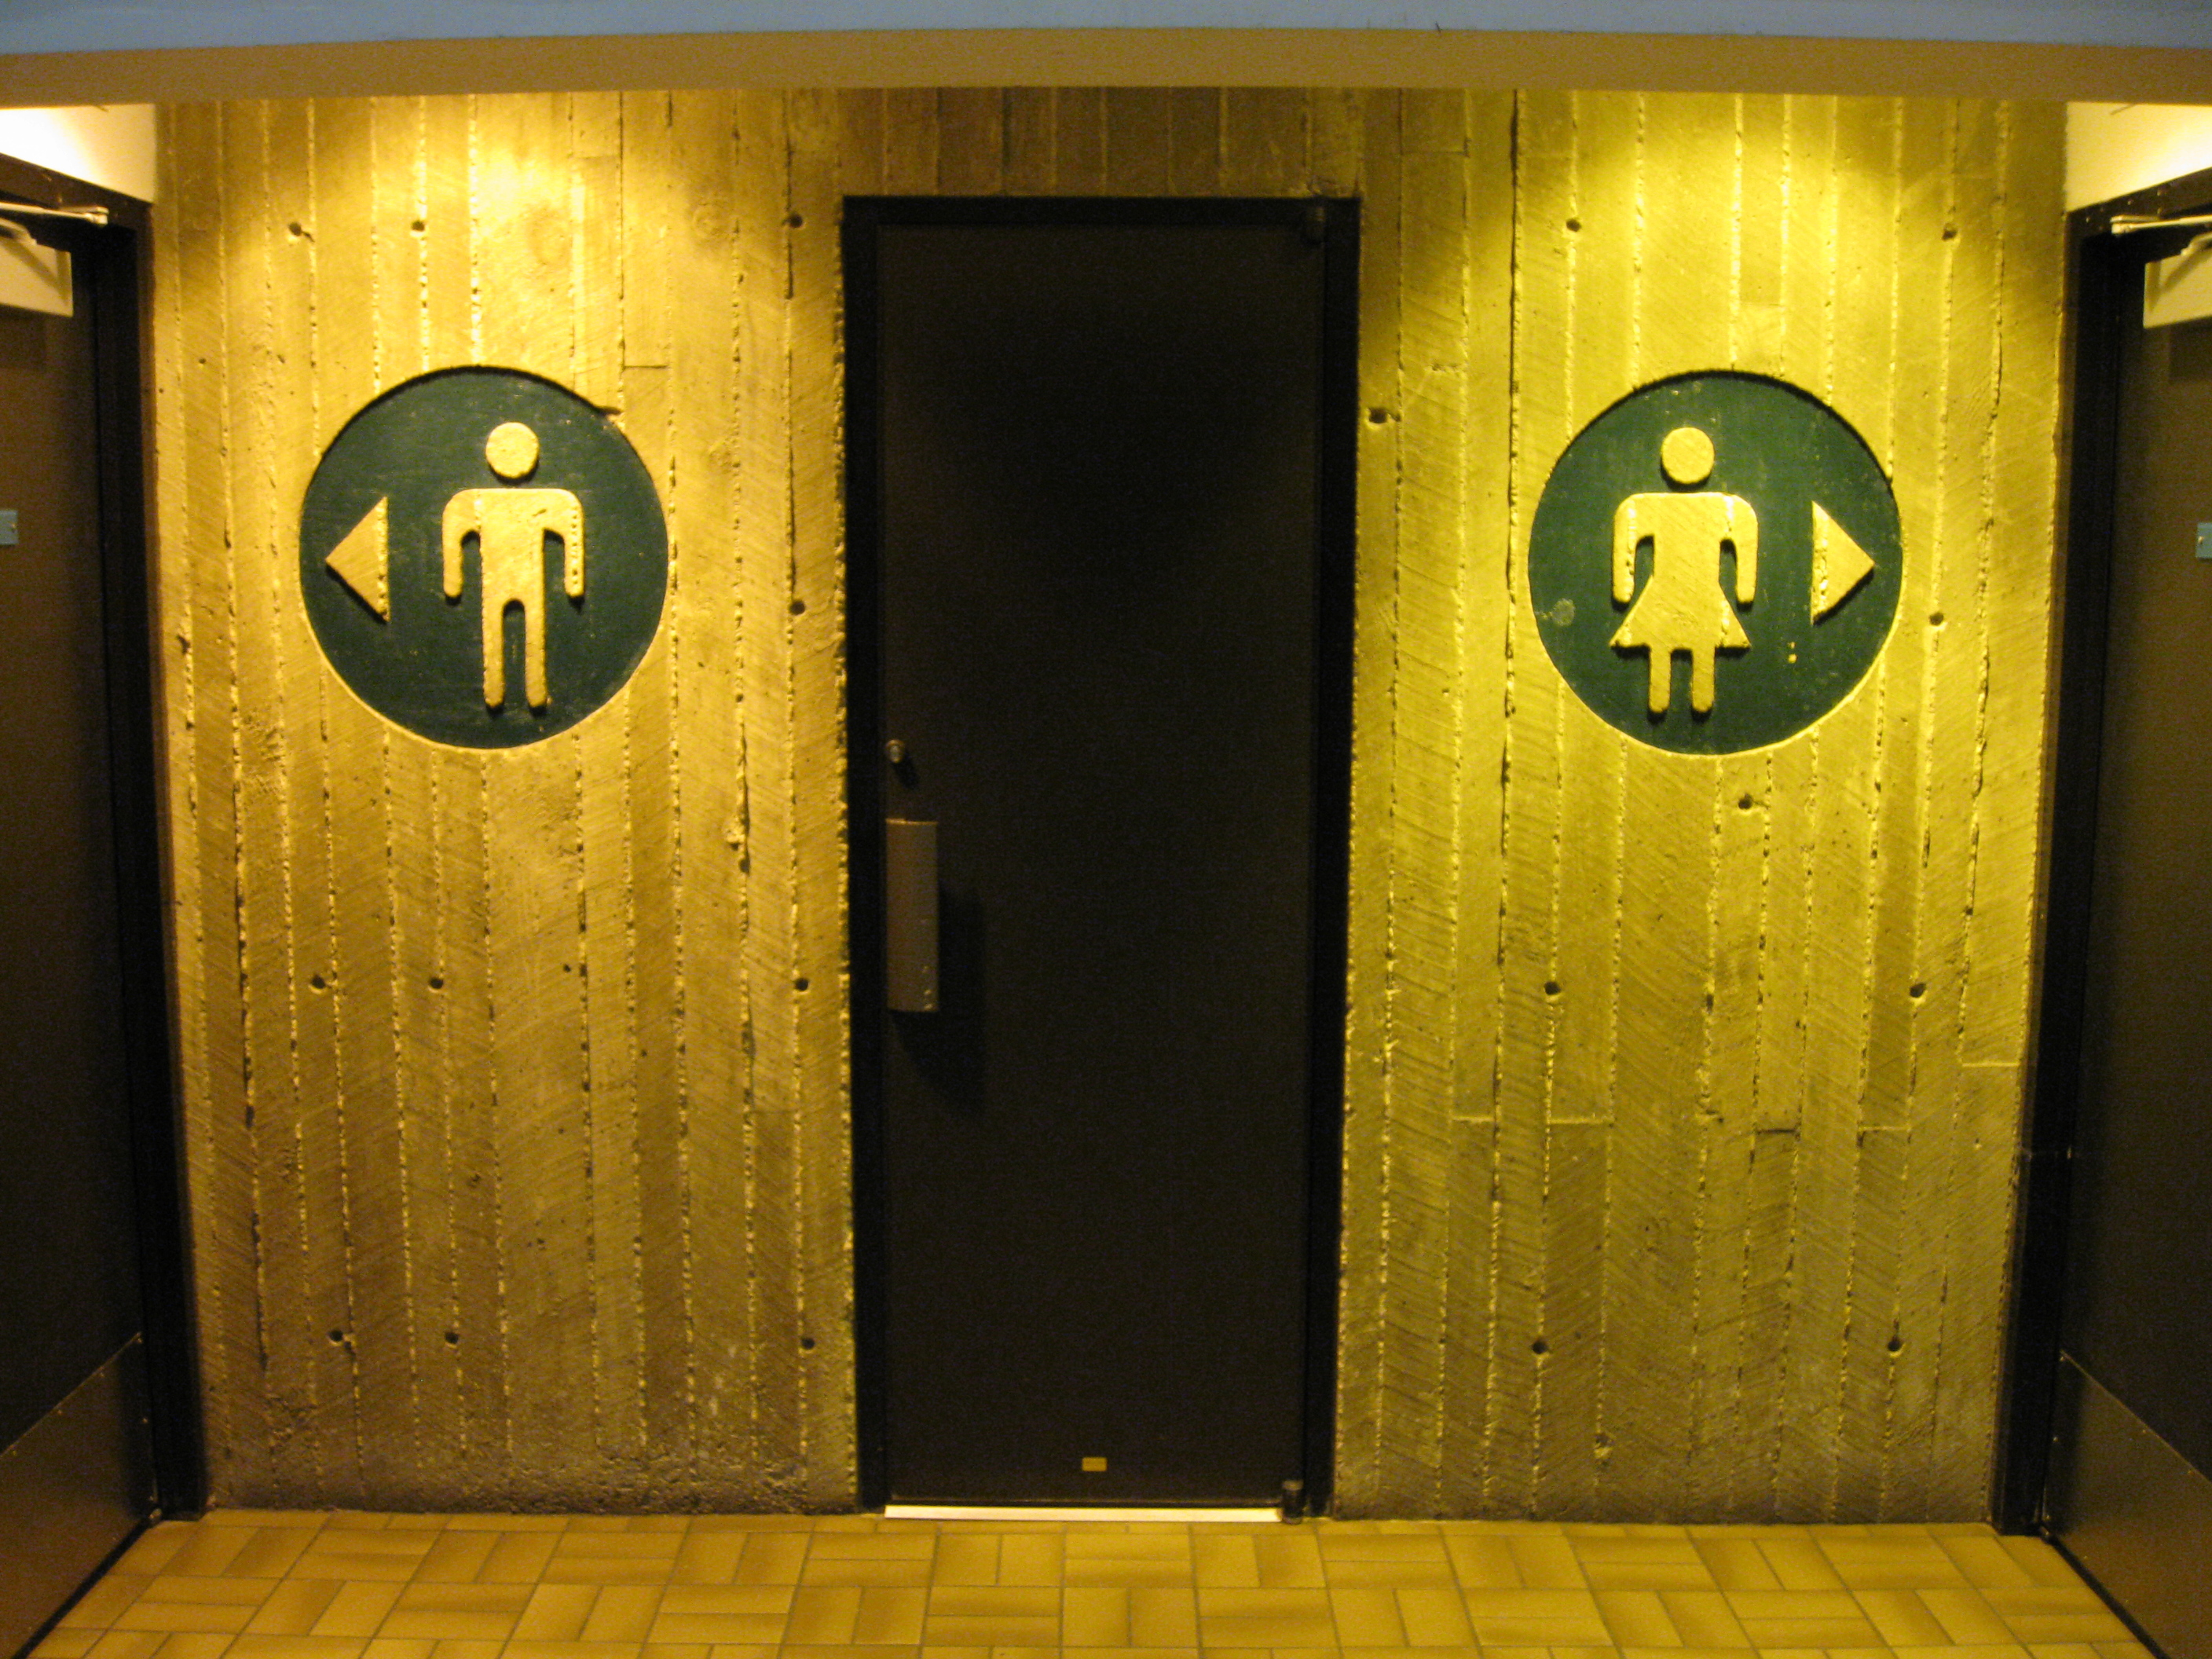 Bathroom Signs History file:restroom signs - wikimedia commons